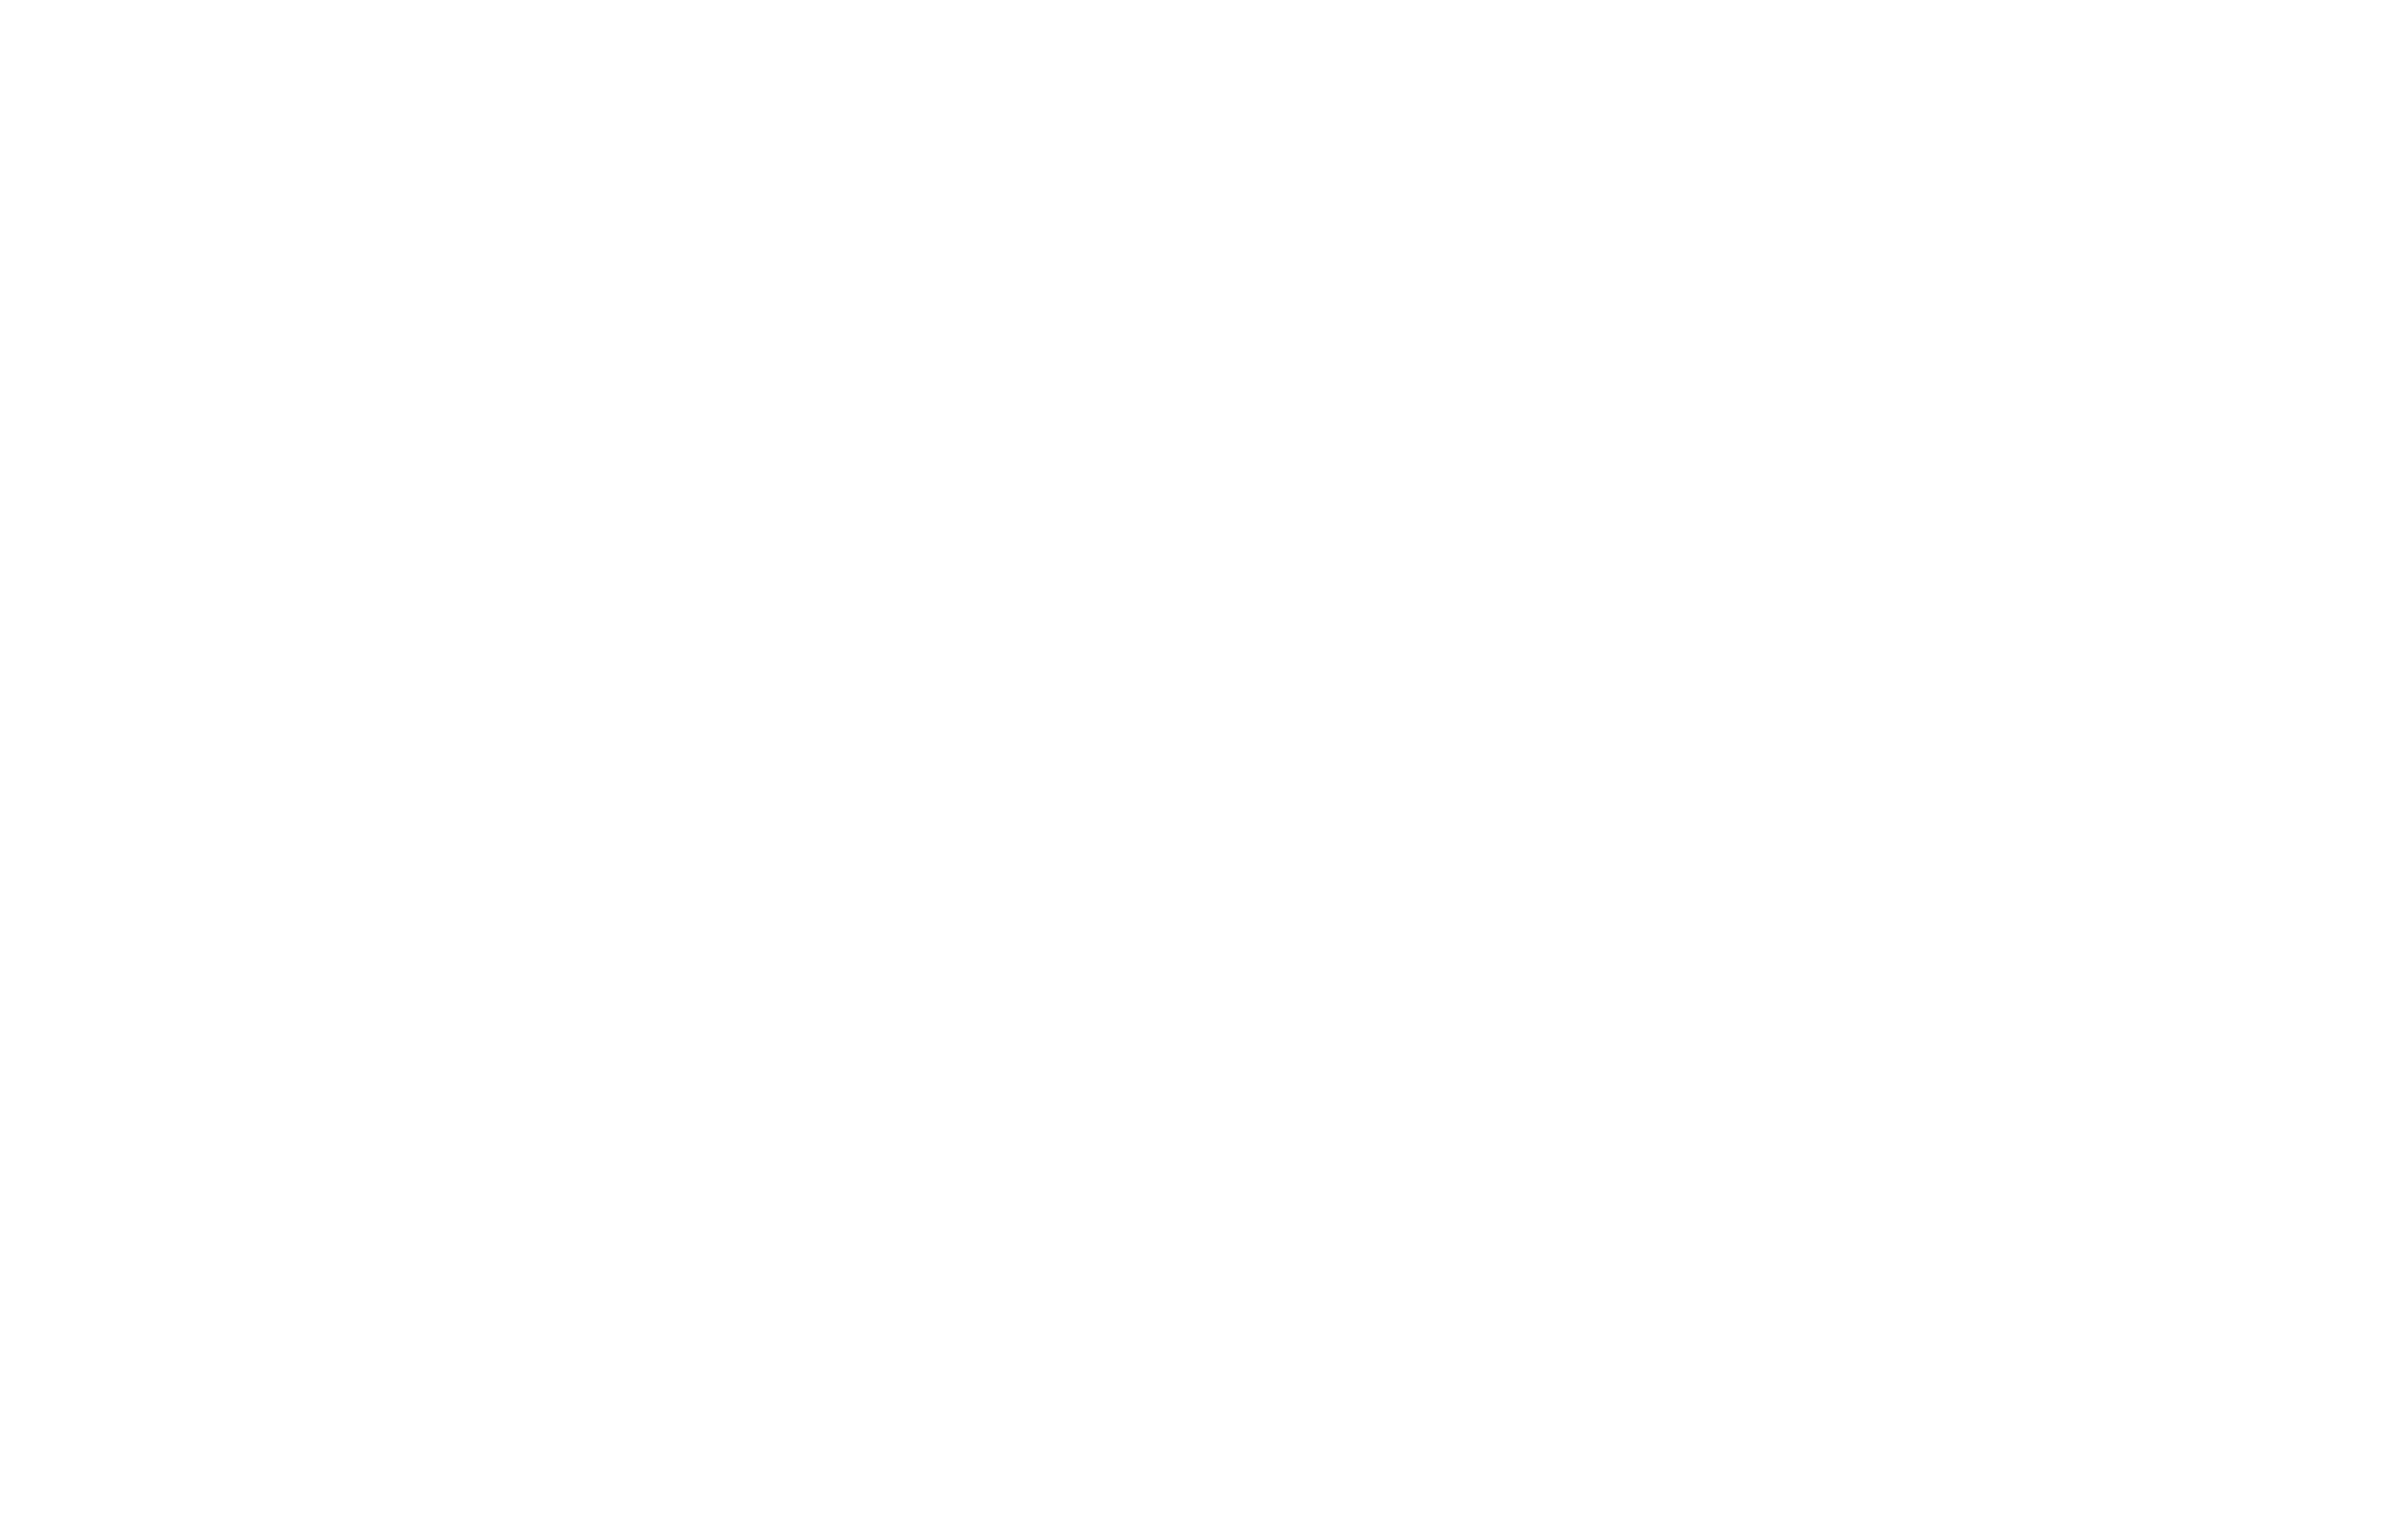 Beaudry_Logos-badge1-white.png